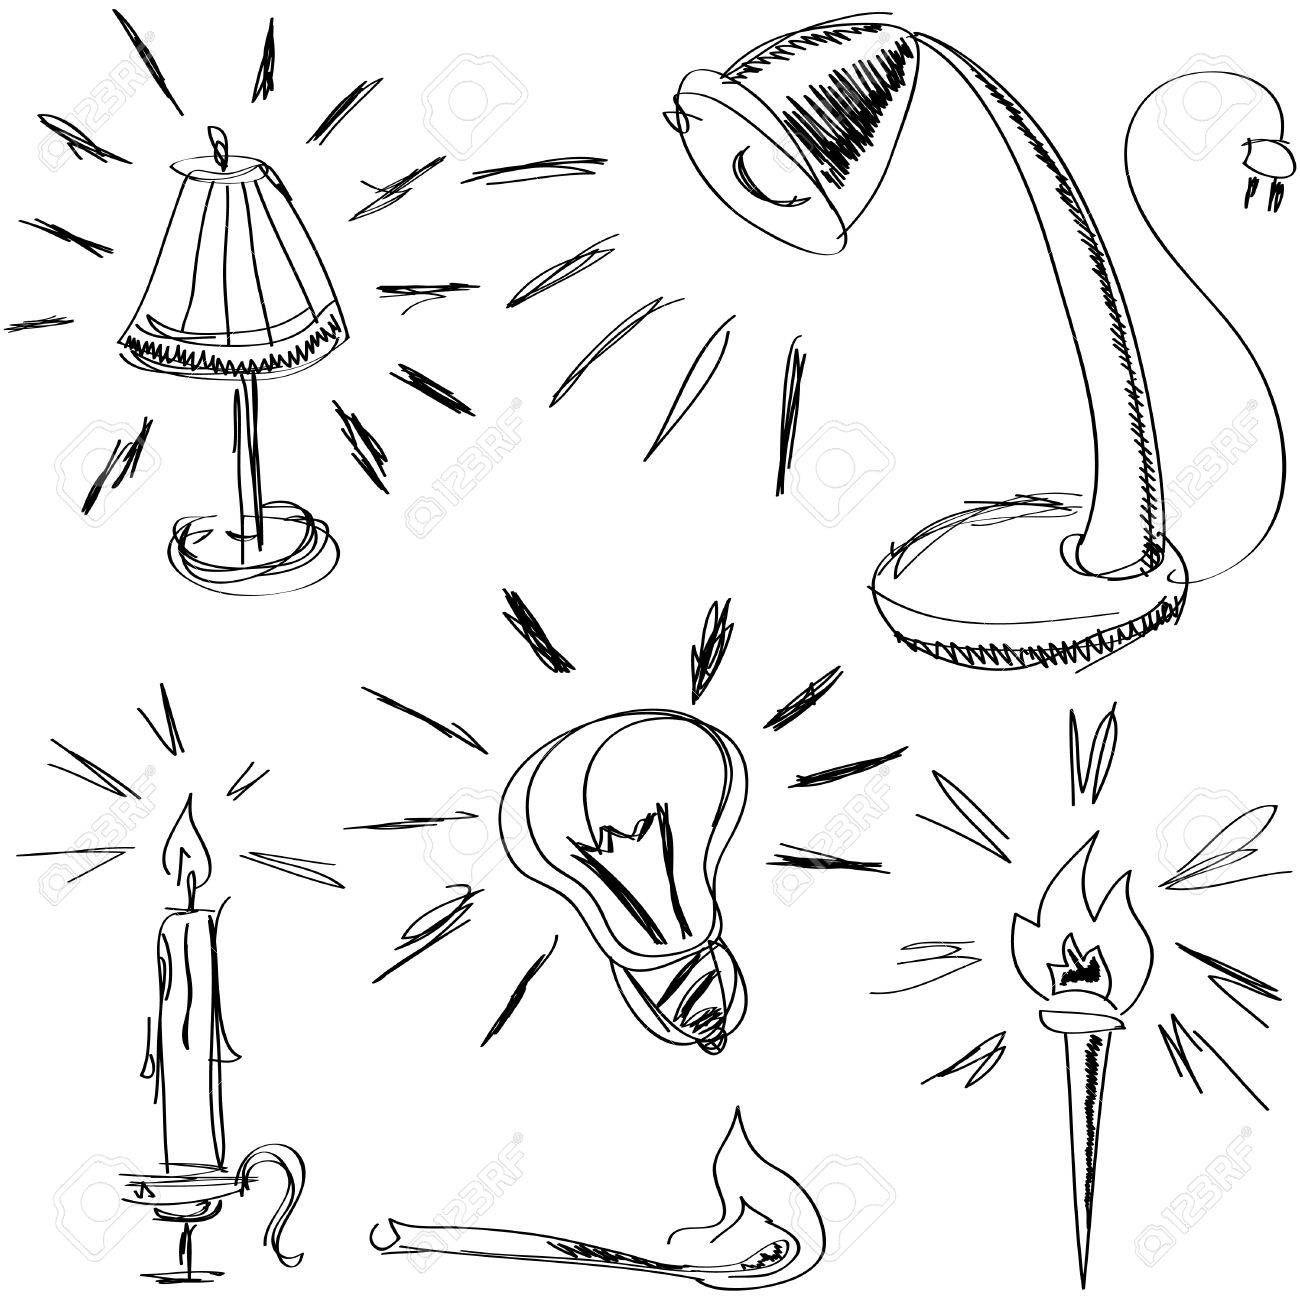 1300x1300 Some Handmade Sketches Of Lighting Devices For Web Design, High